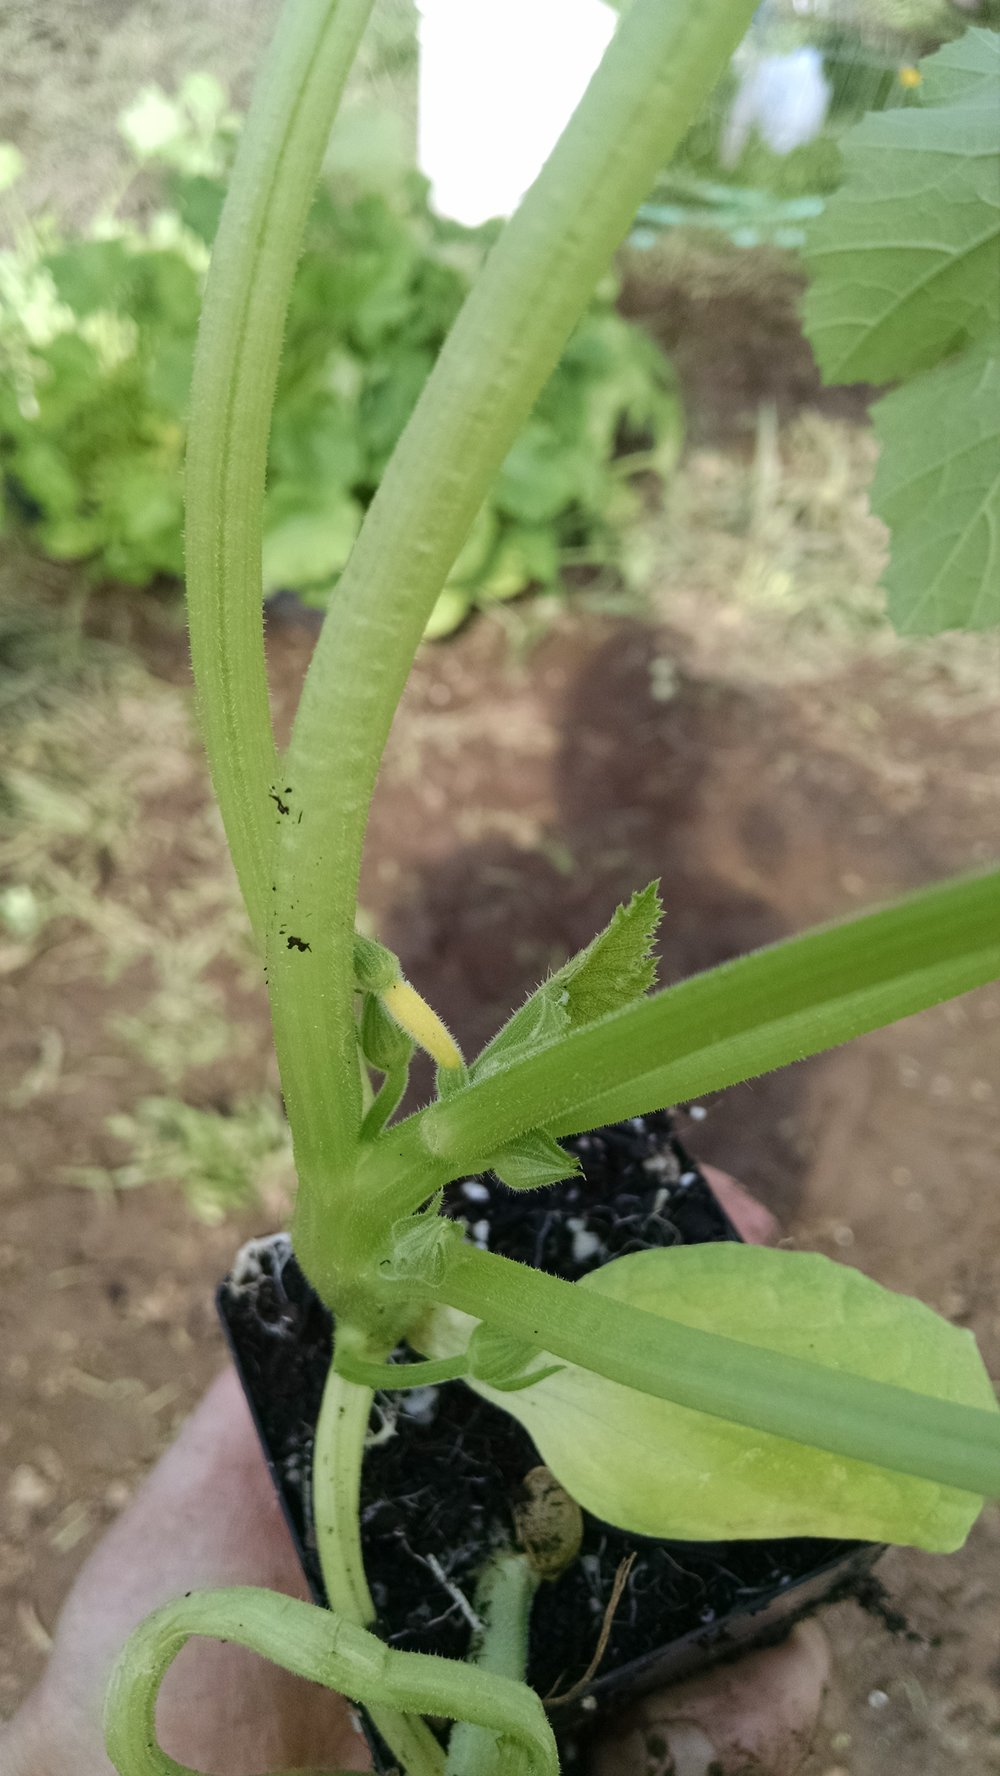 Teeny yellow zucchini fruit already formed before transplanting